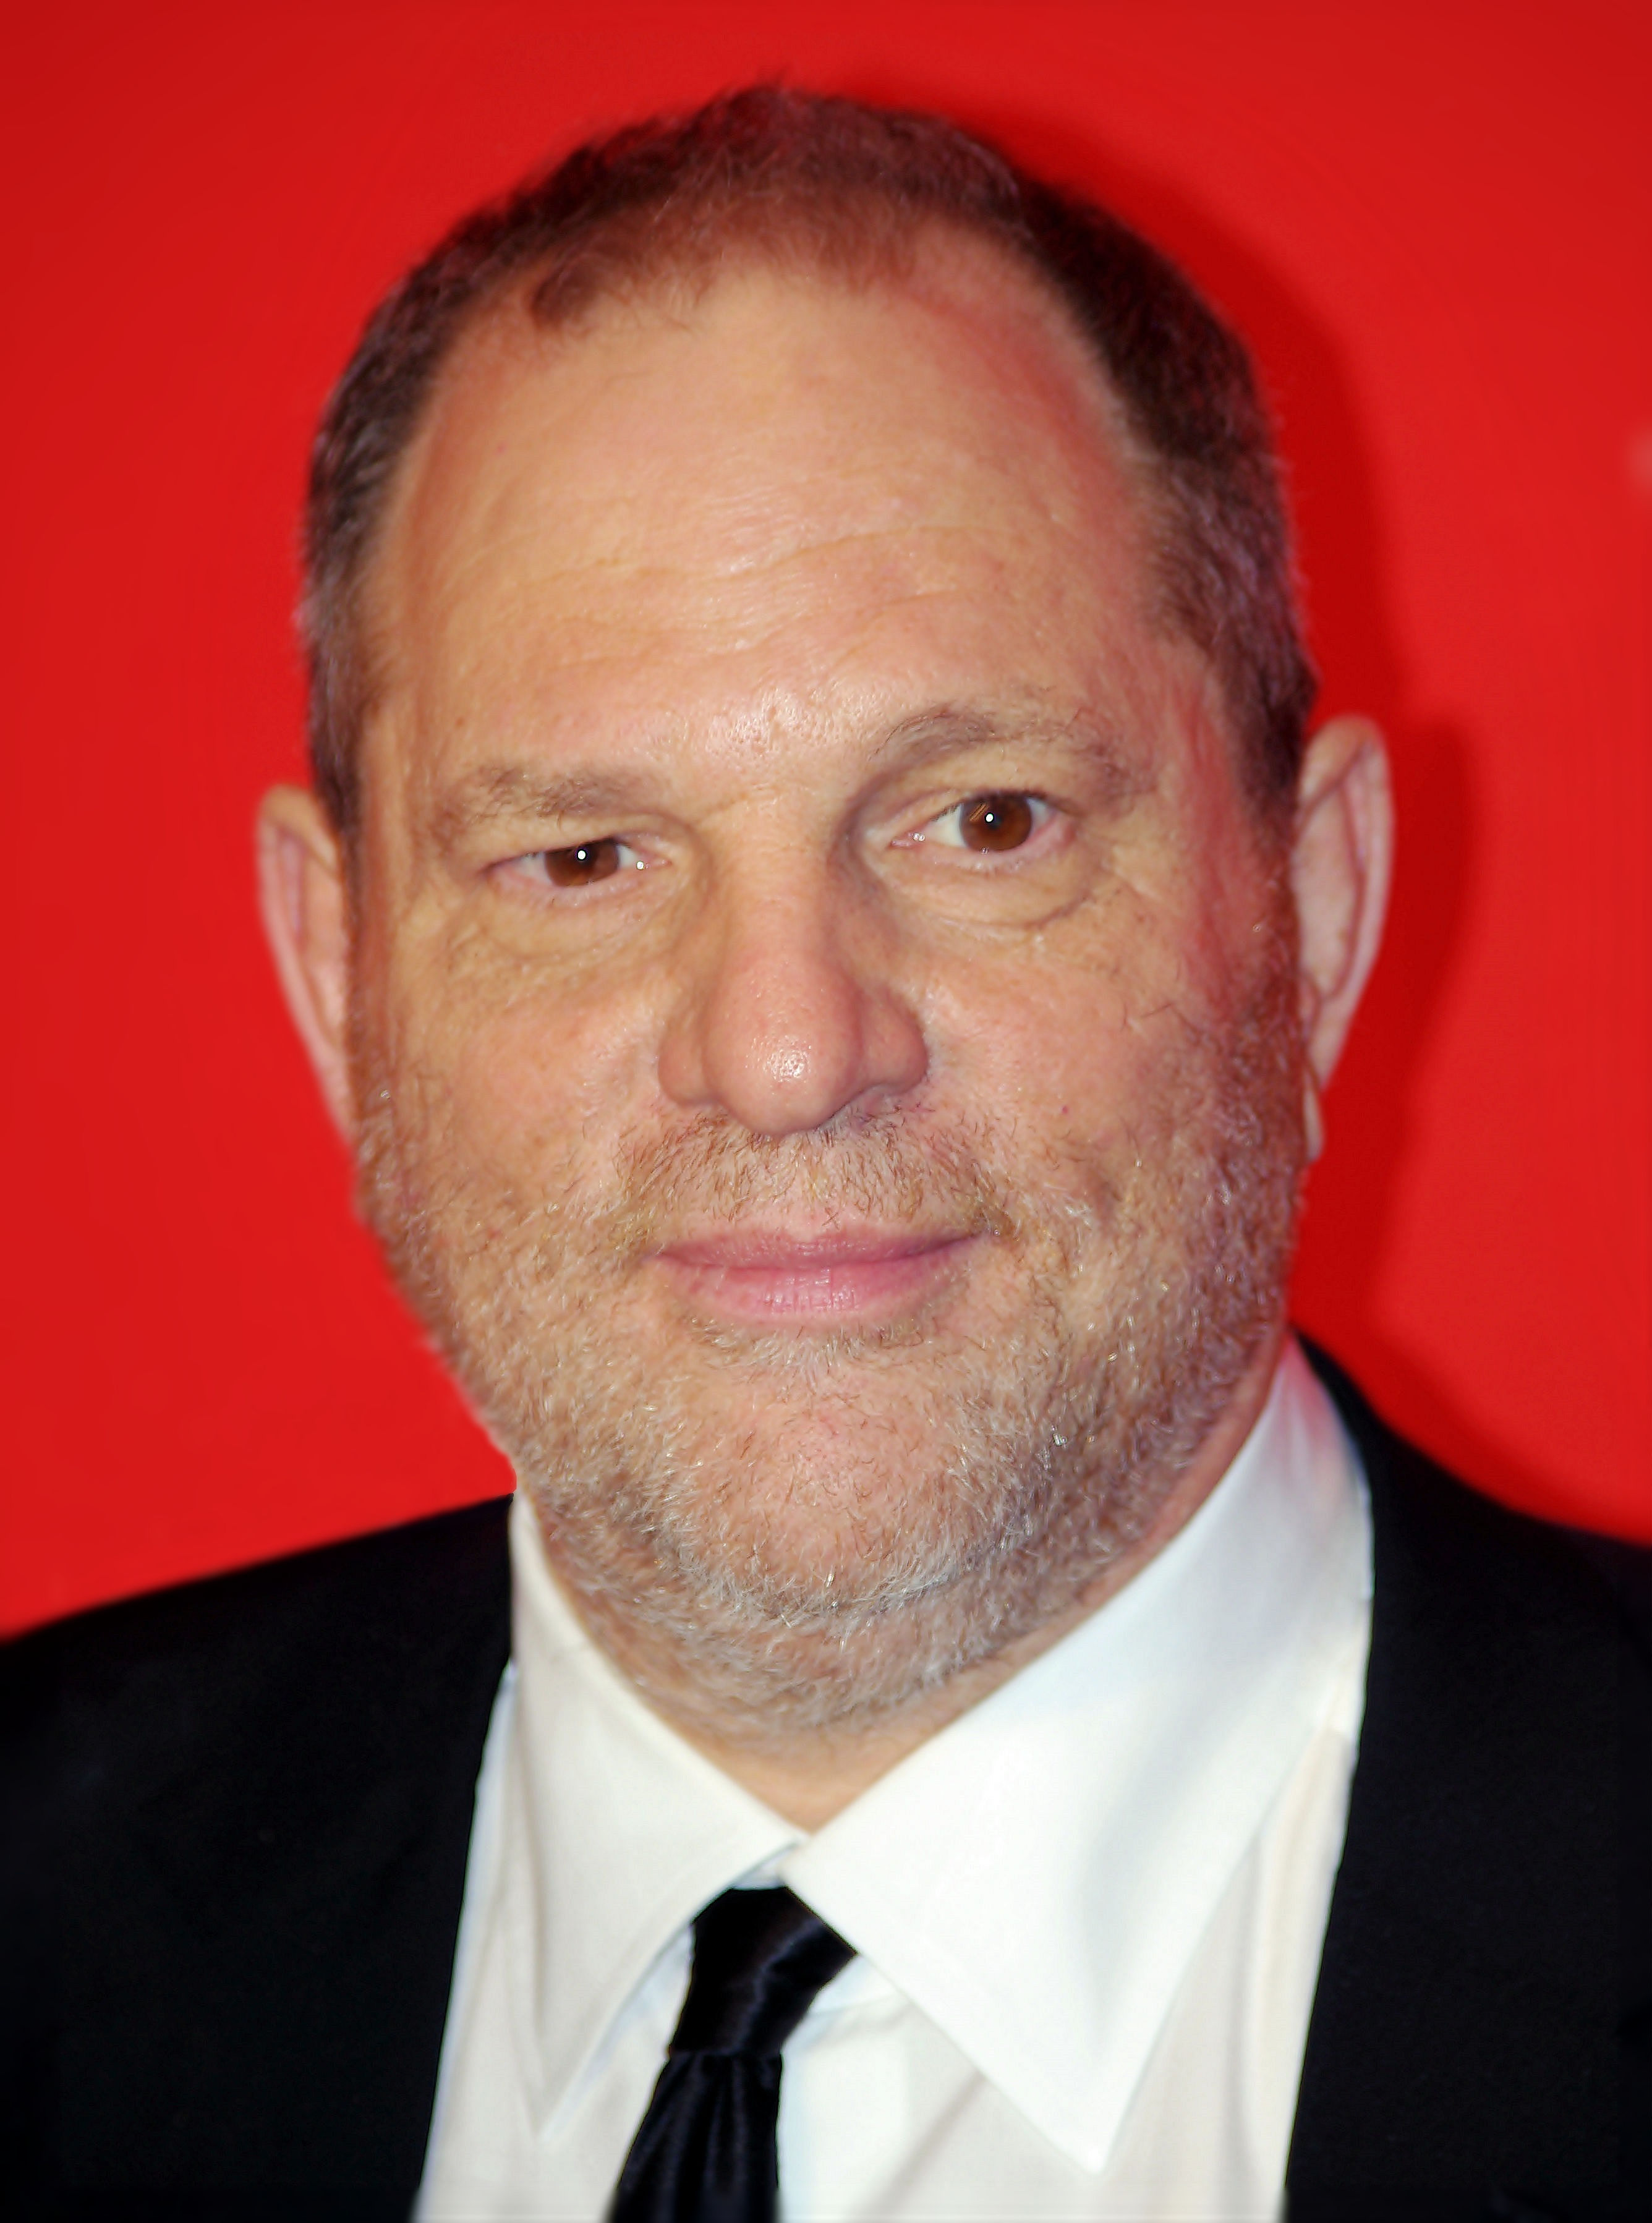 Harvey Weinstein is sued by woman he was convicted of sexually assaulting